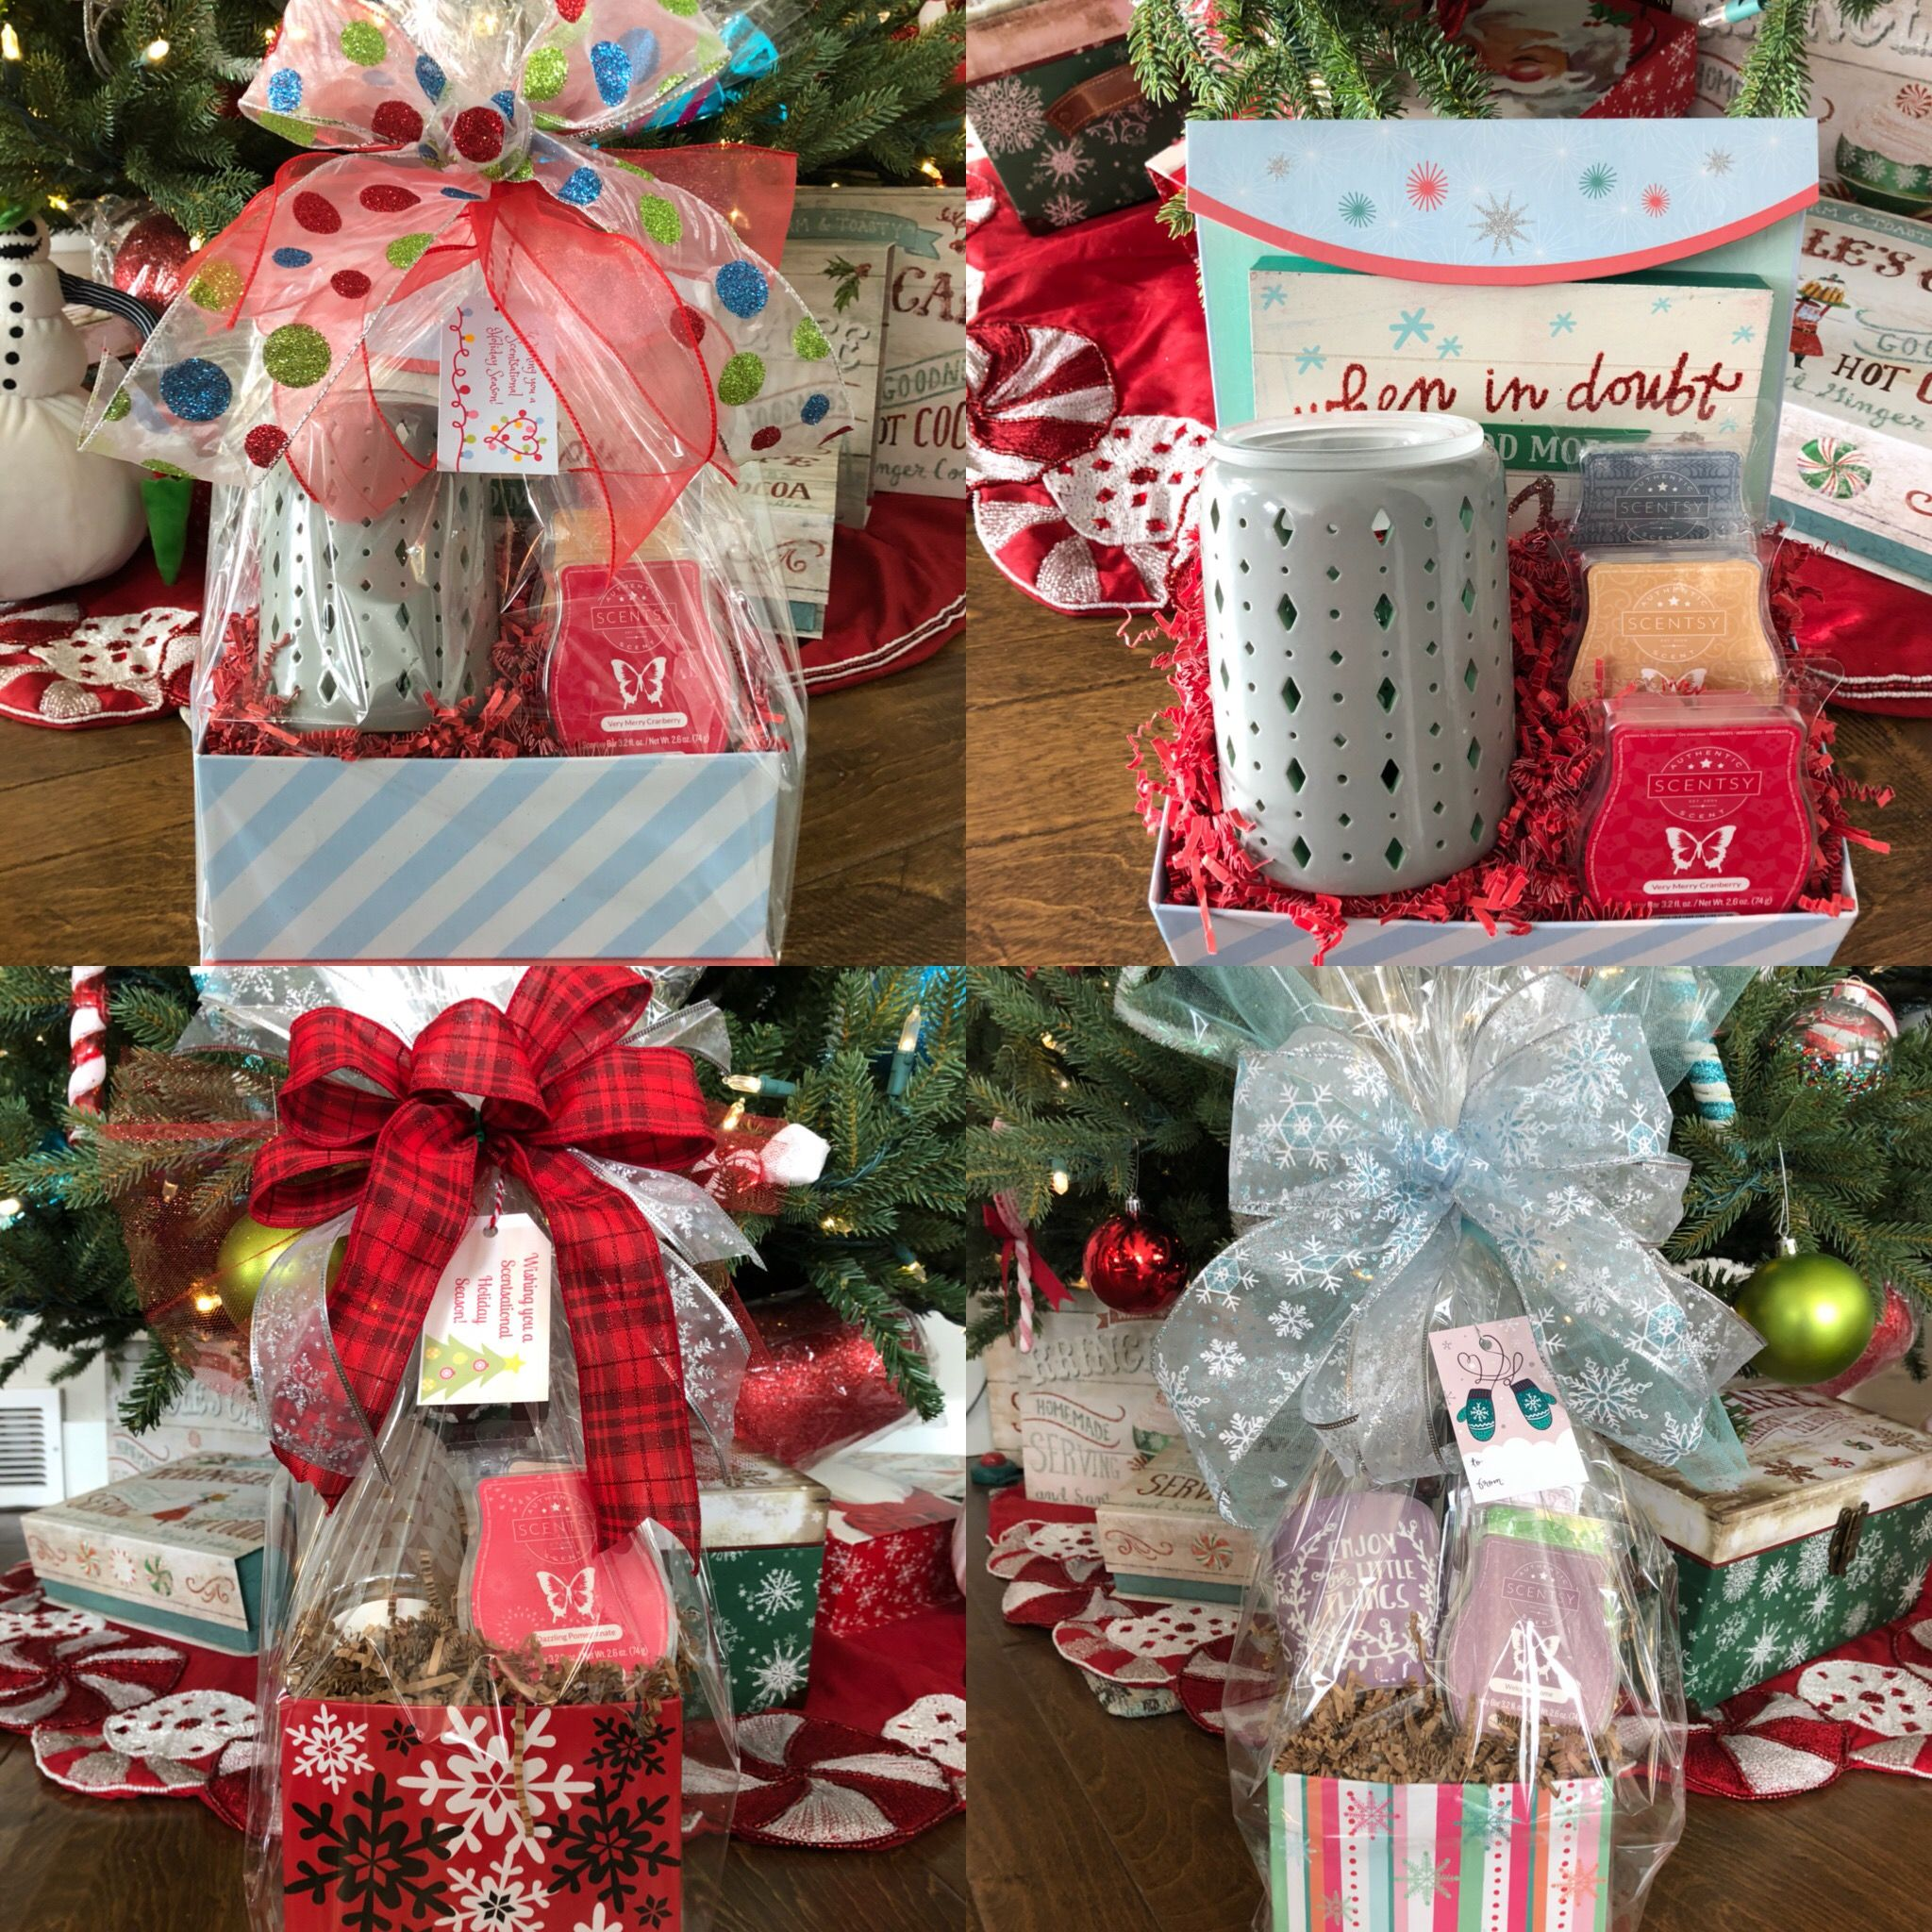 Scentsy Gift Sets Www Therightscent Com Christmas Bundle Gifts Scentsy Sample Ideas Scentsy Hostess